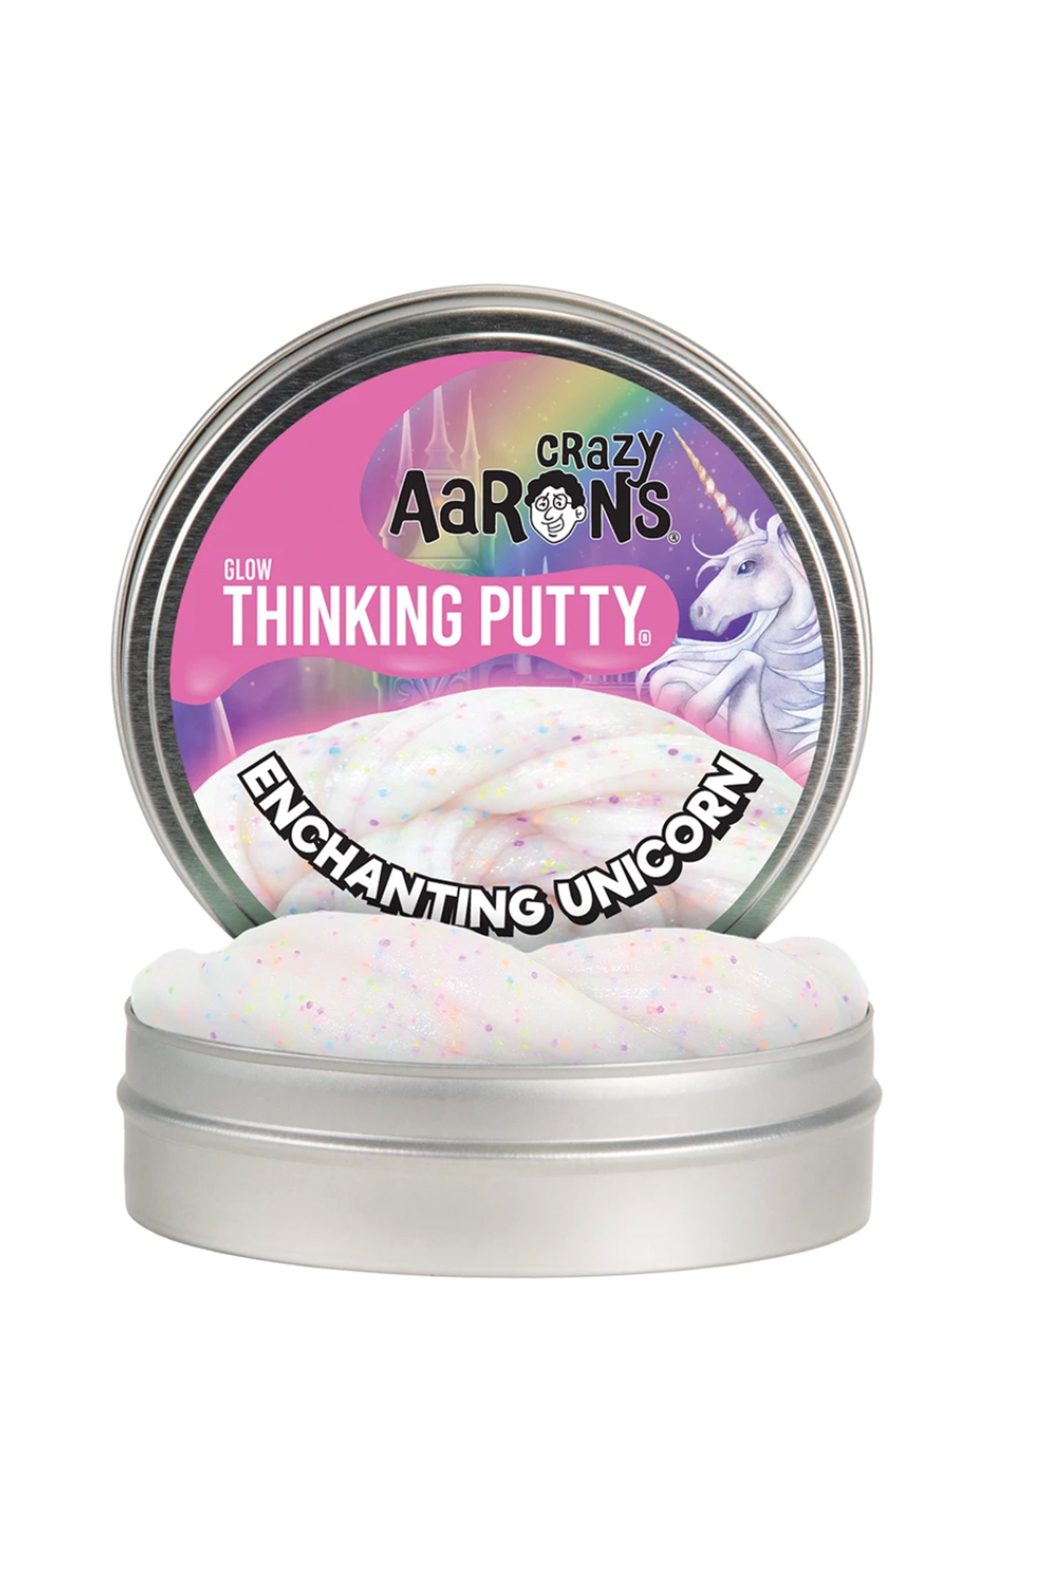 Crazy Aaron's Putty World Enchanting Unicorn 4